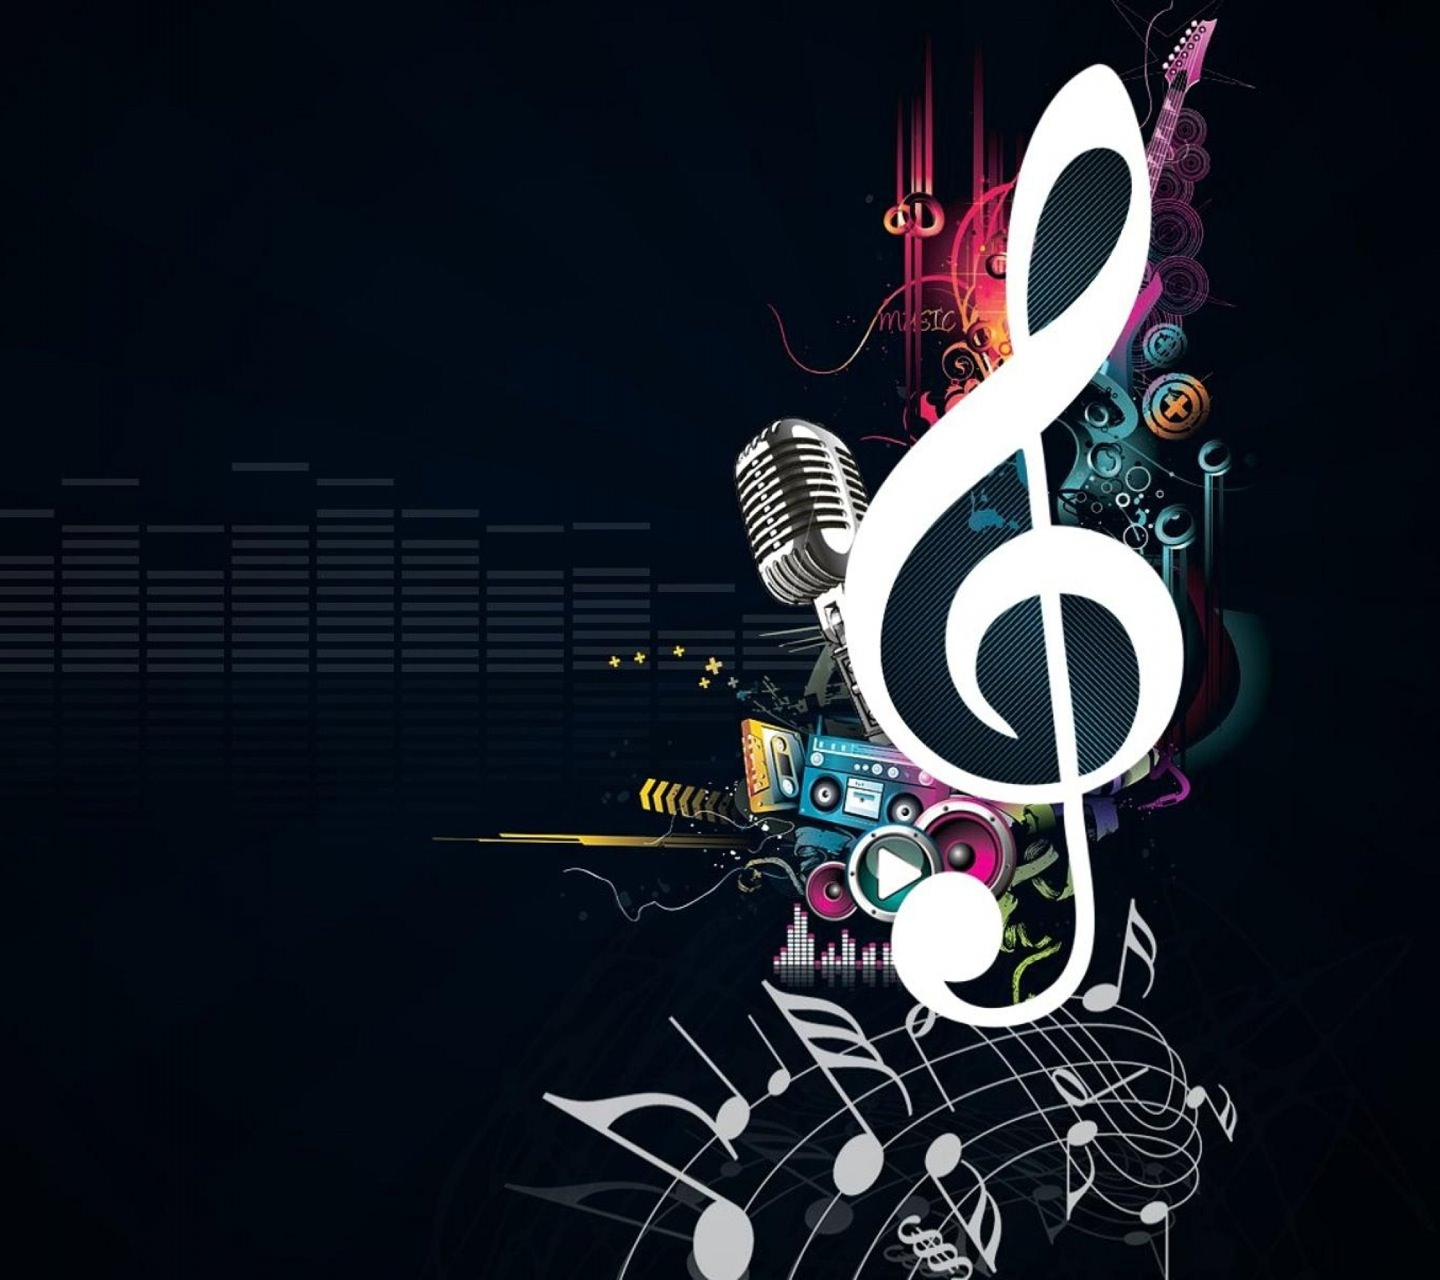 Amazing Wallpaper Music Android Phone - android-1440x1280-wallpaper_01752  Pic_5310017.jpg